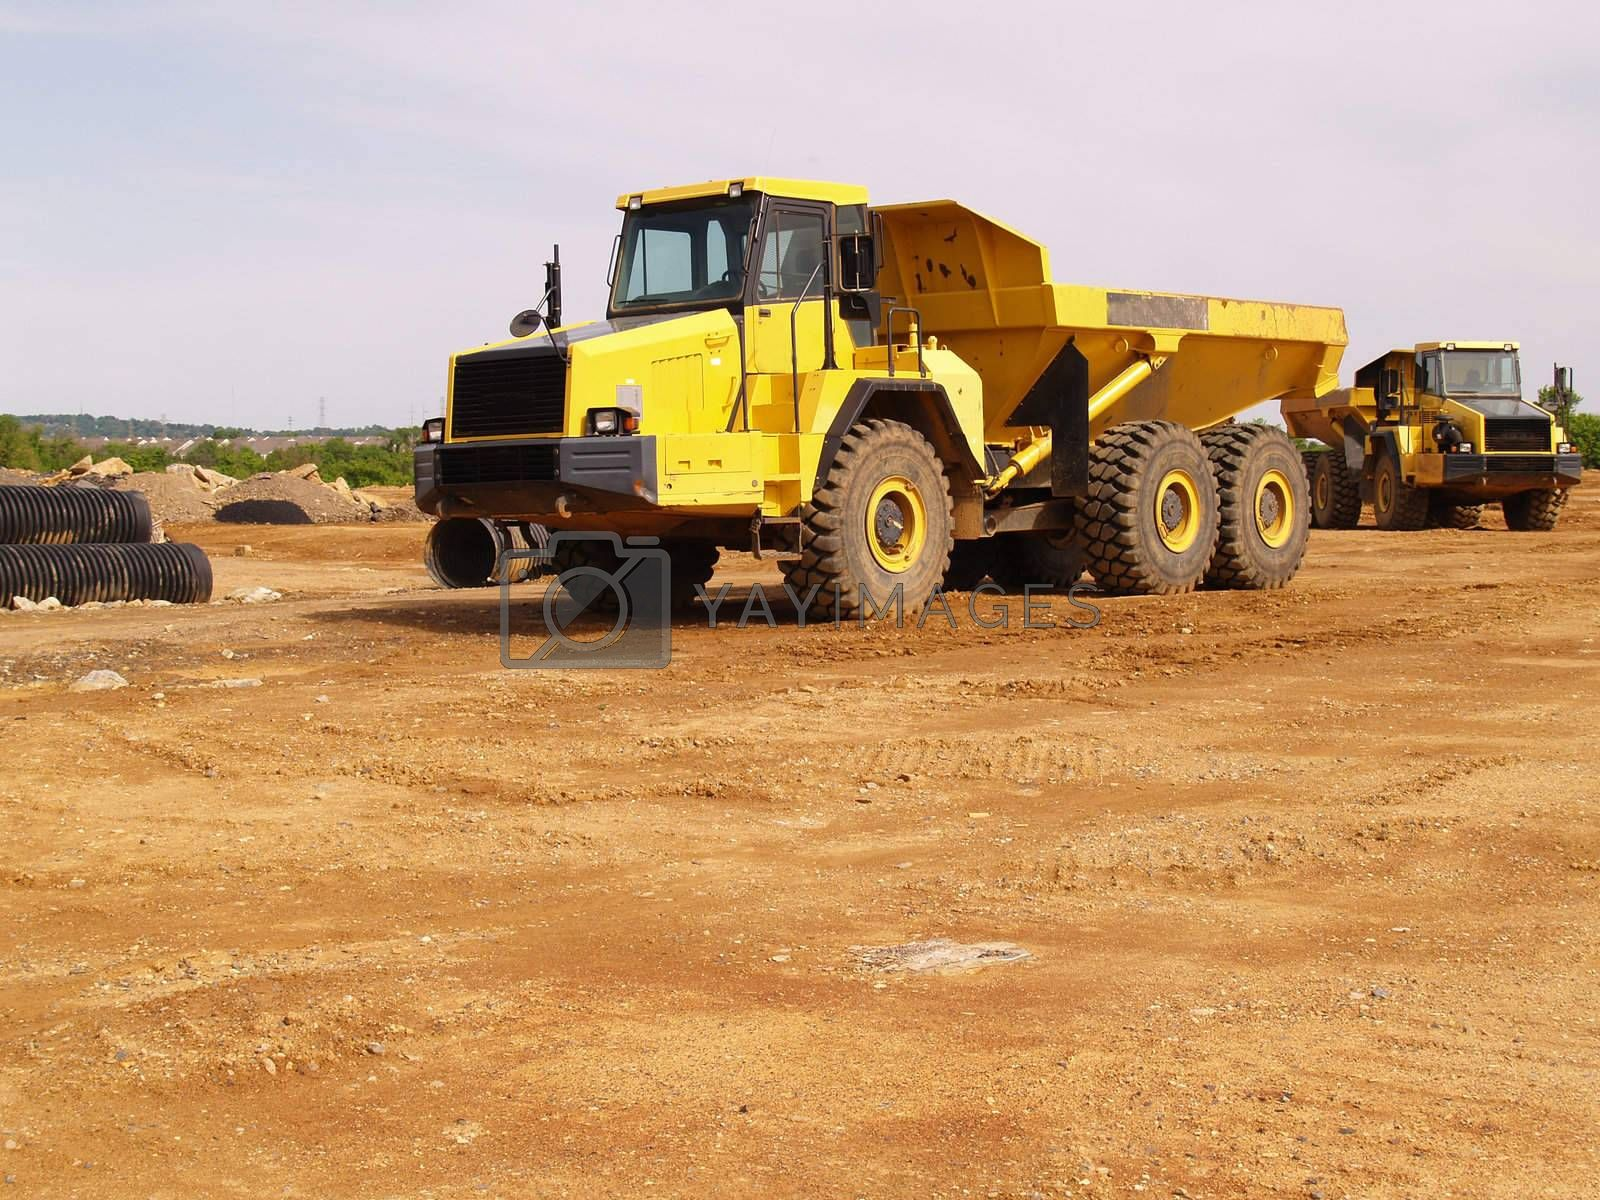 a yellow dump truck by a construction site